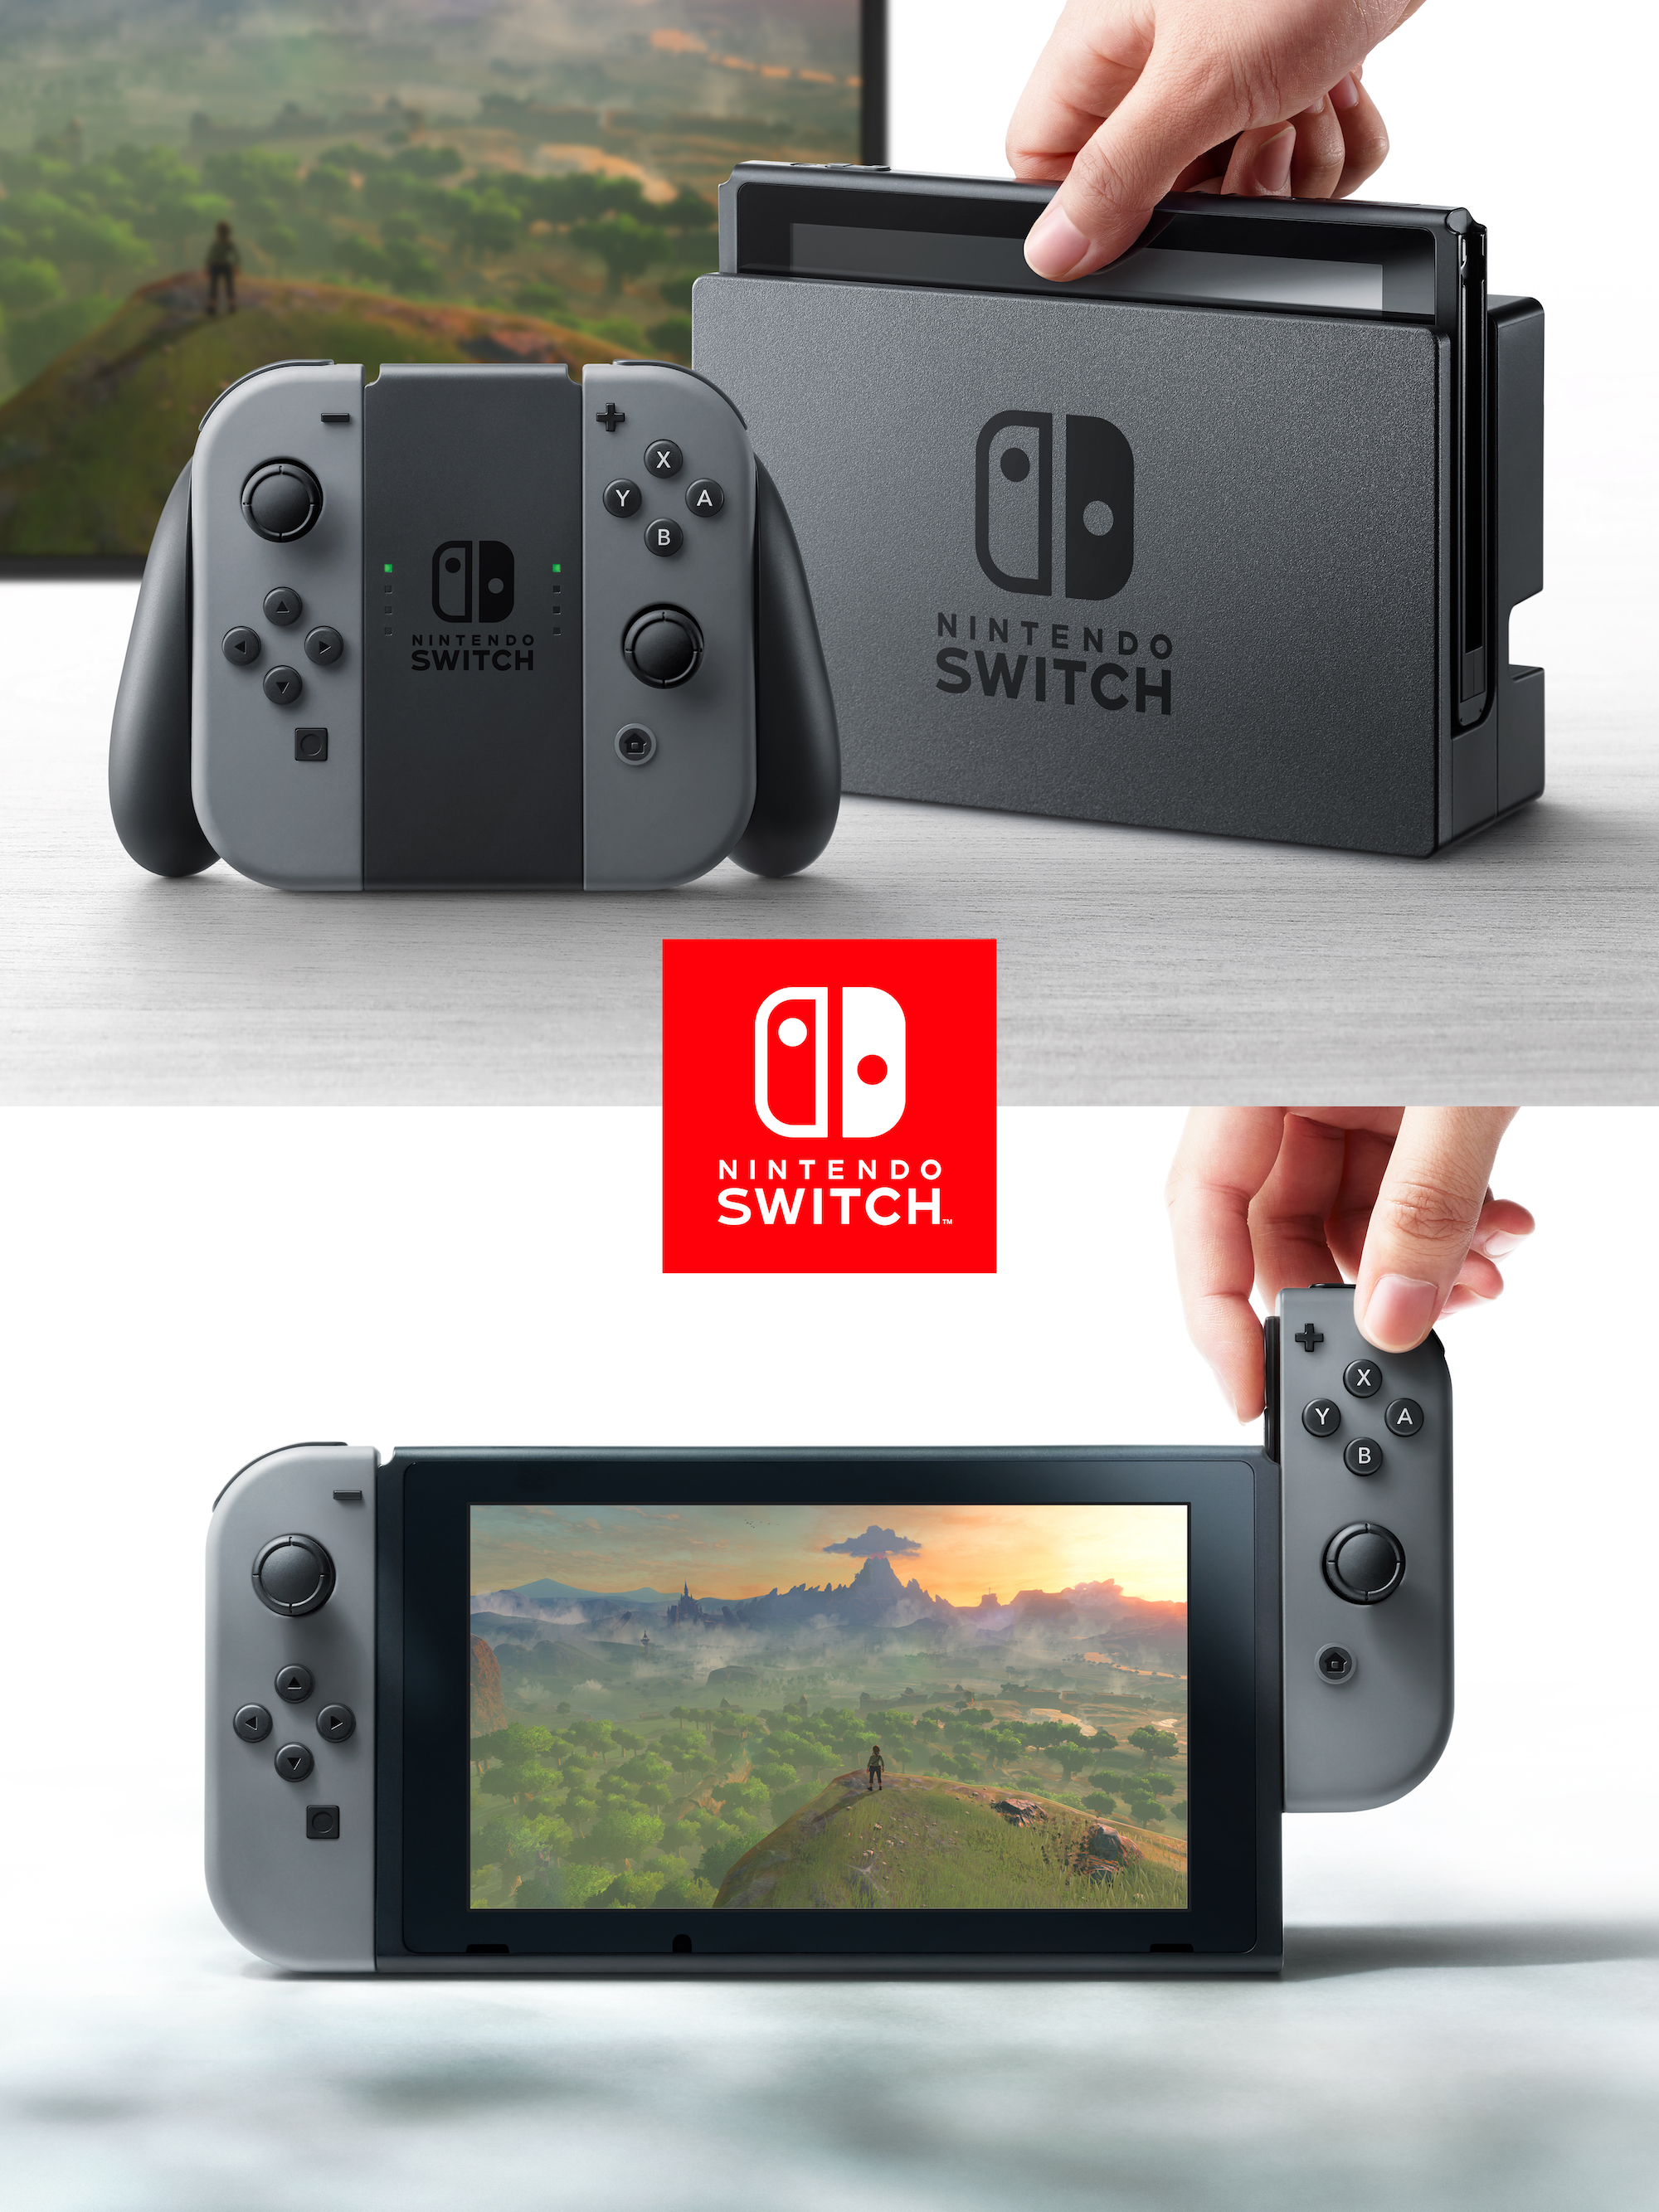 cdn.bgr.com/2016/10/nintendo-switch1.jpg